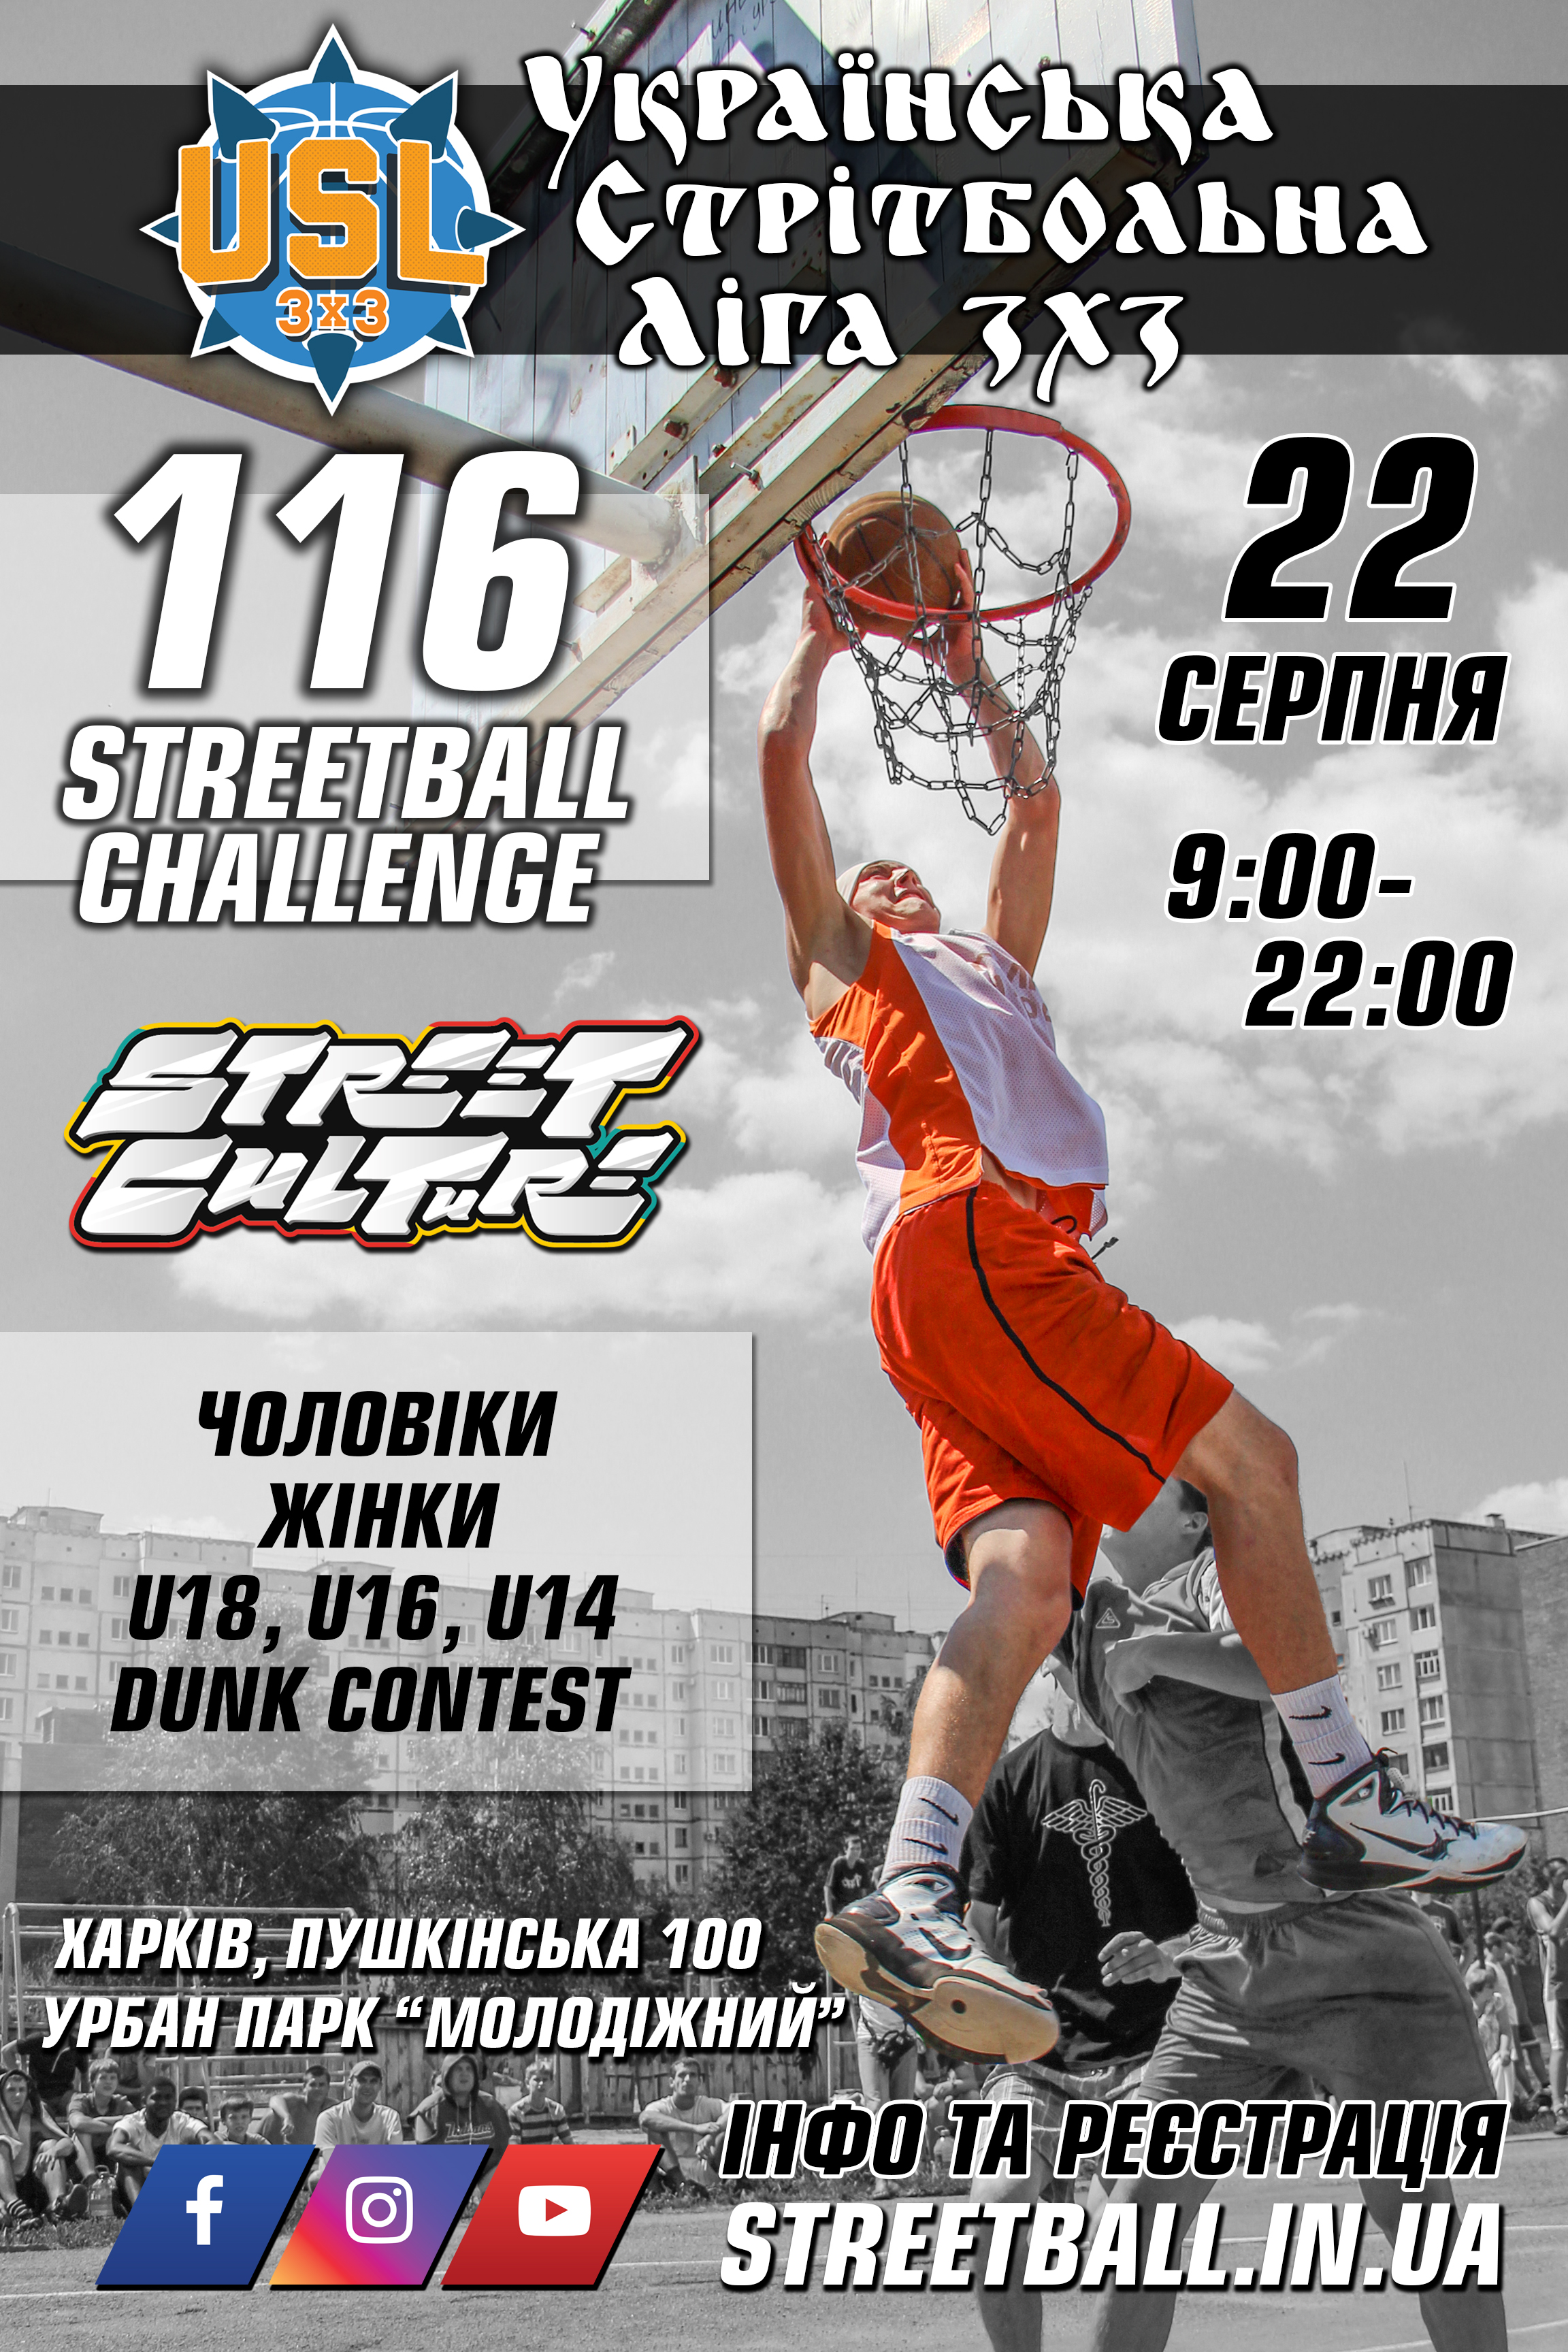 116 Streetball Challenge